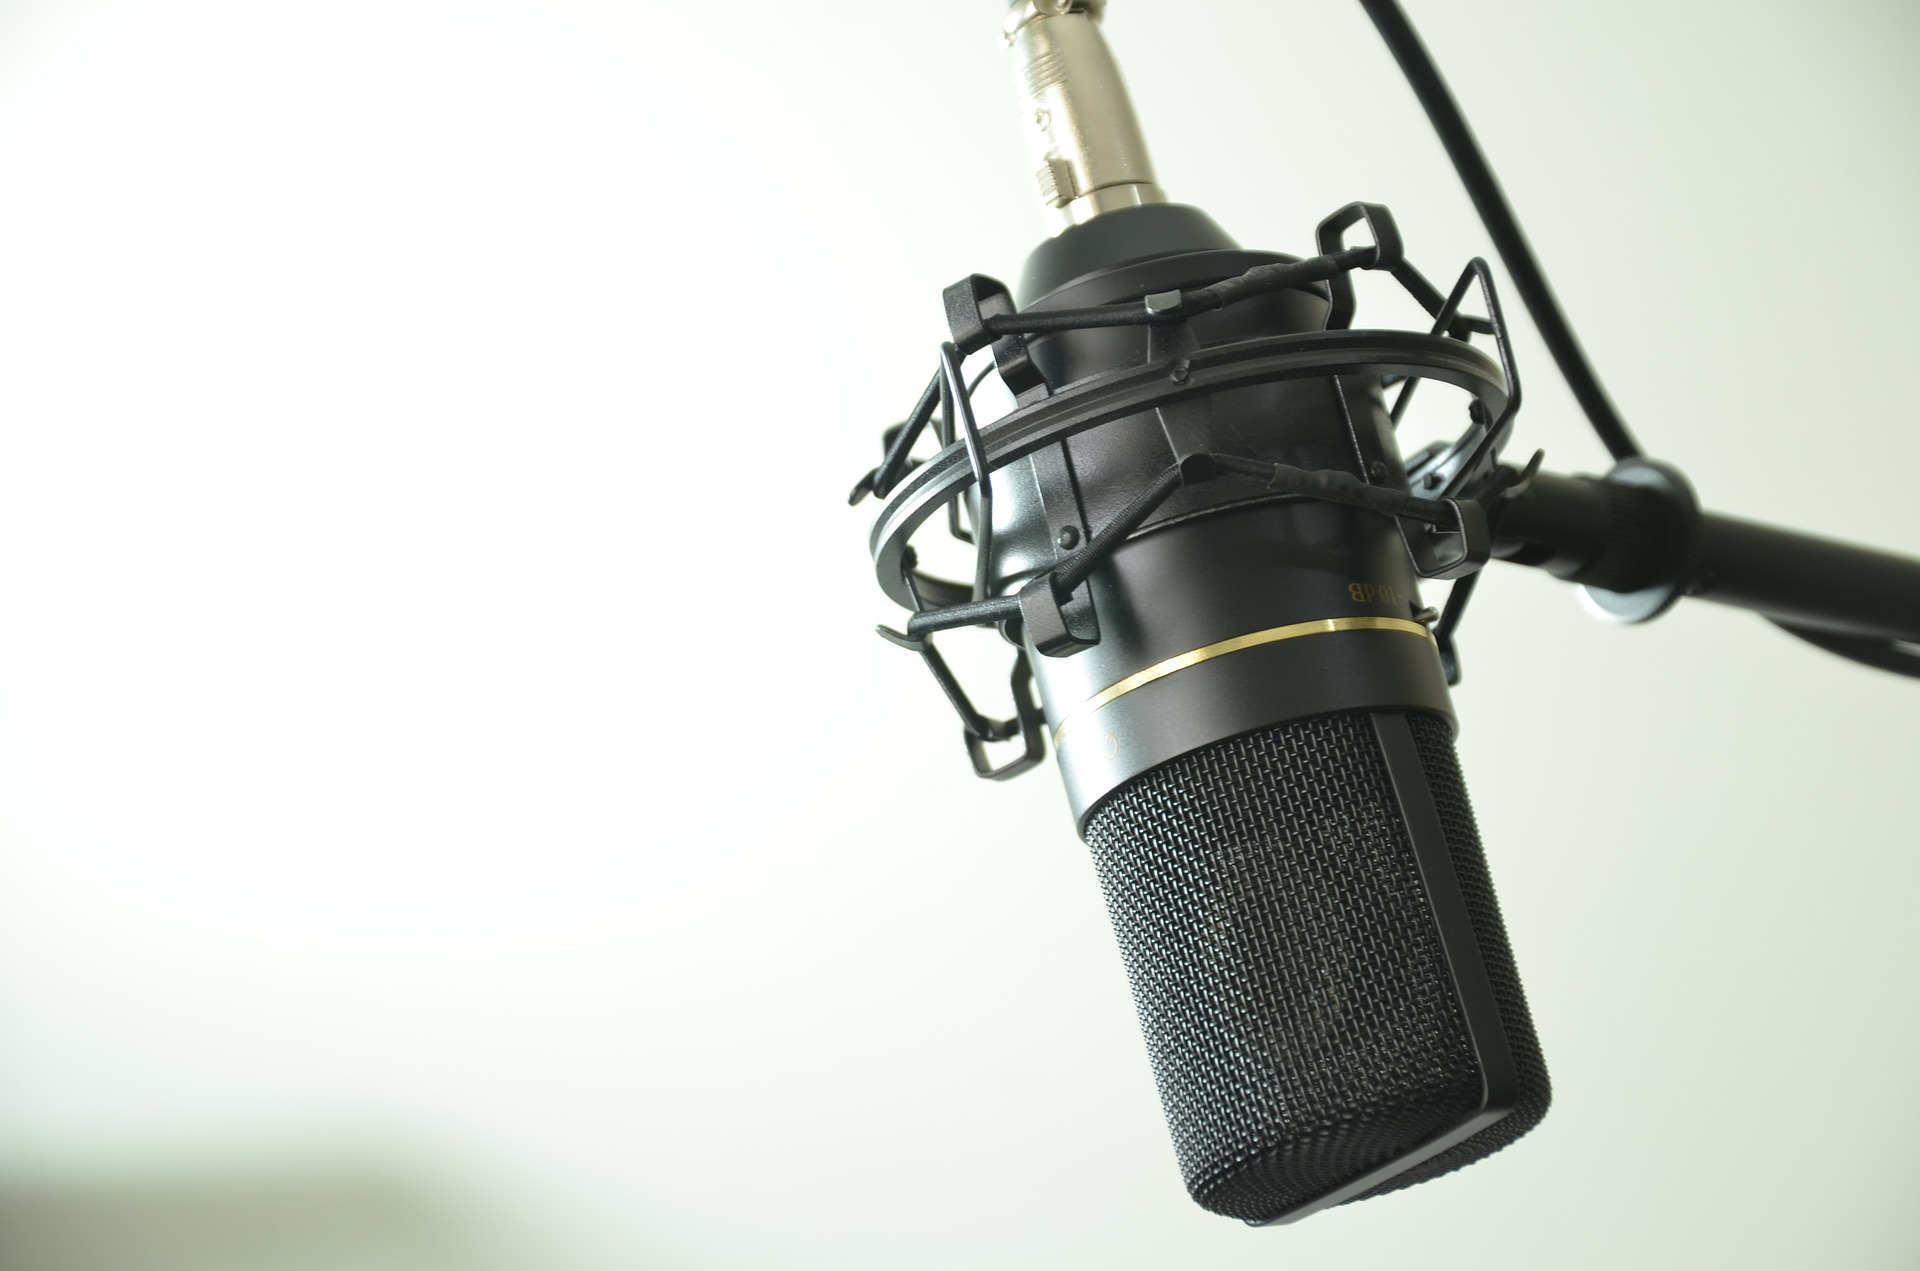 English language voice commentary